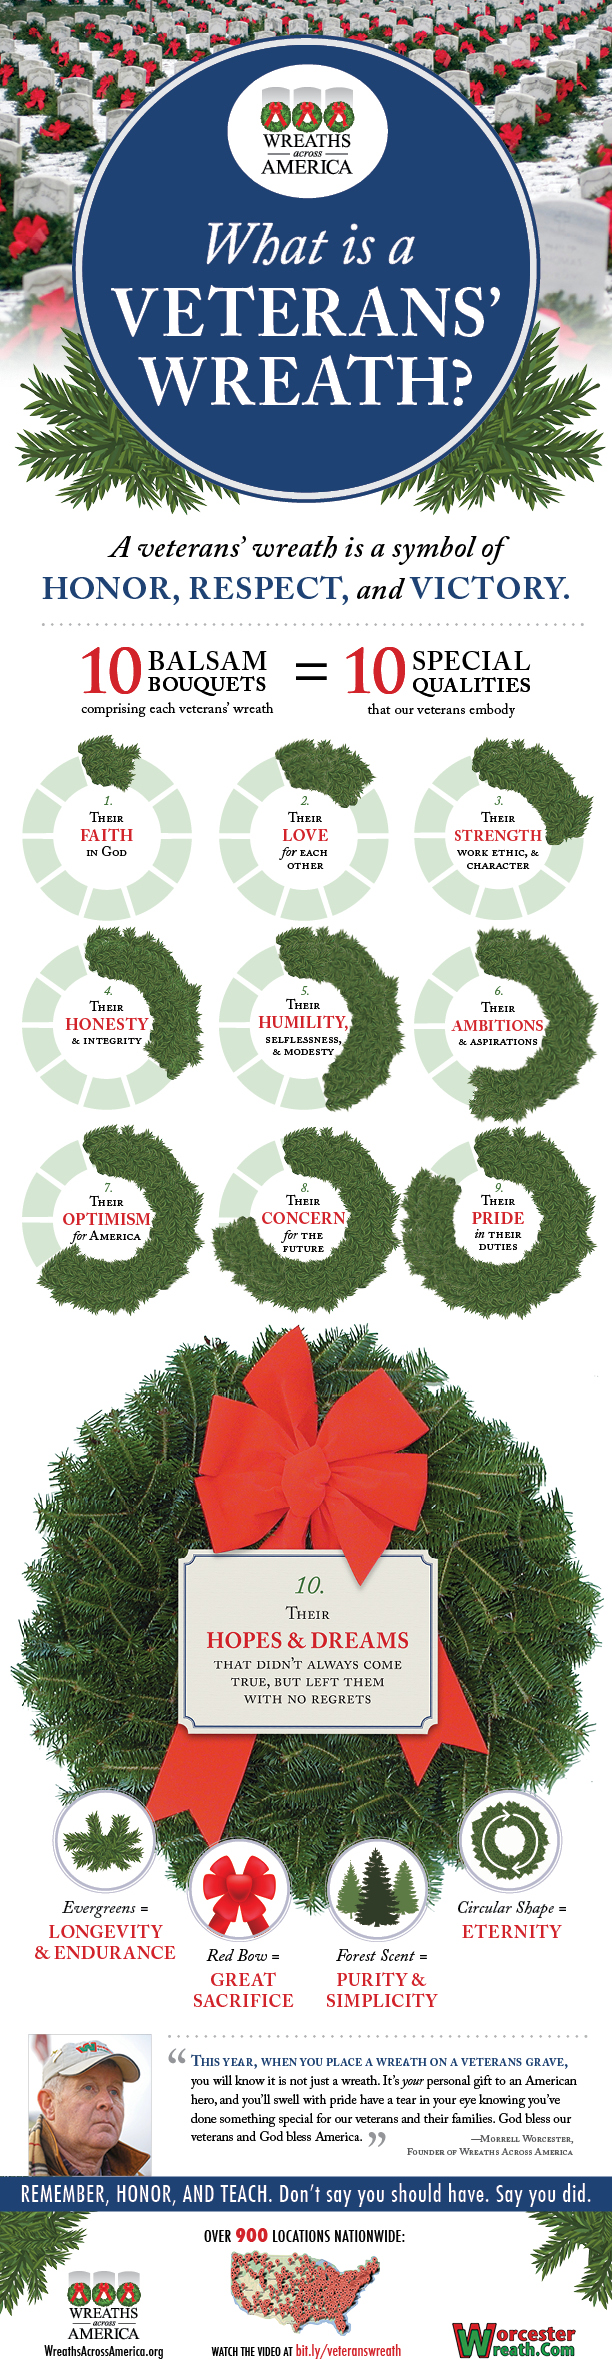 What a Vetrans Wreath Means - Wreaths Across America